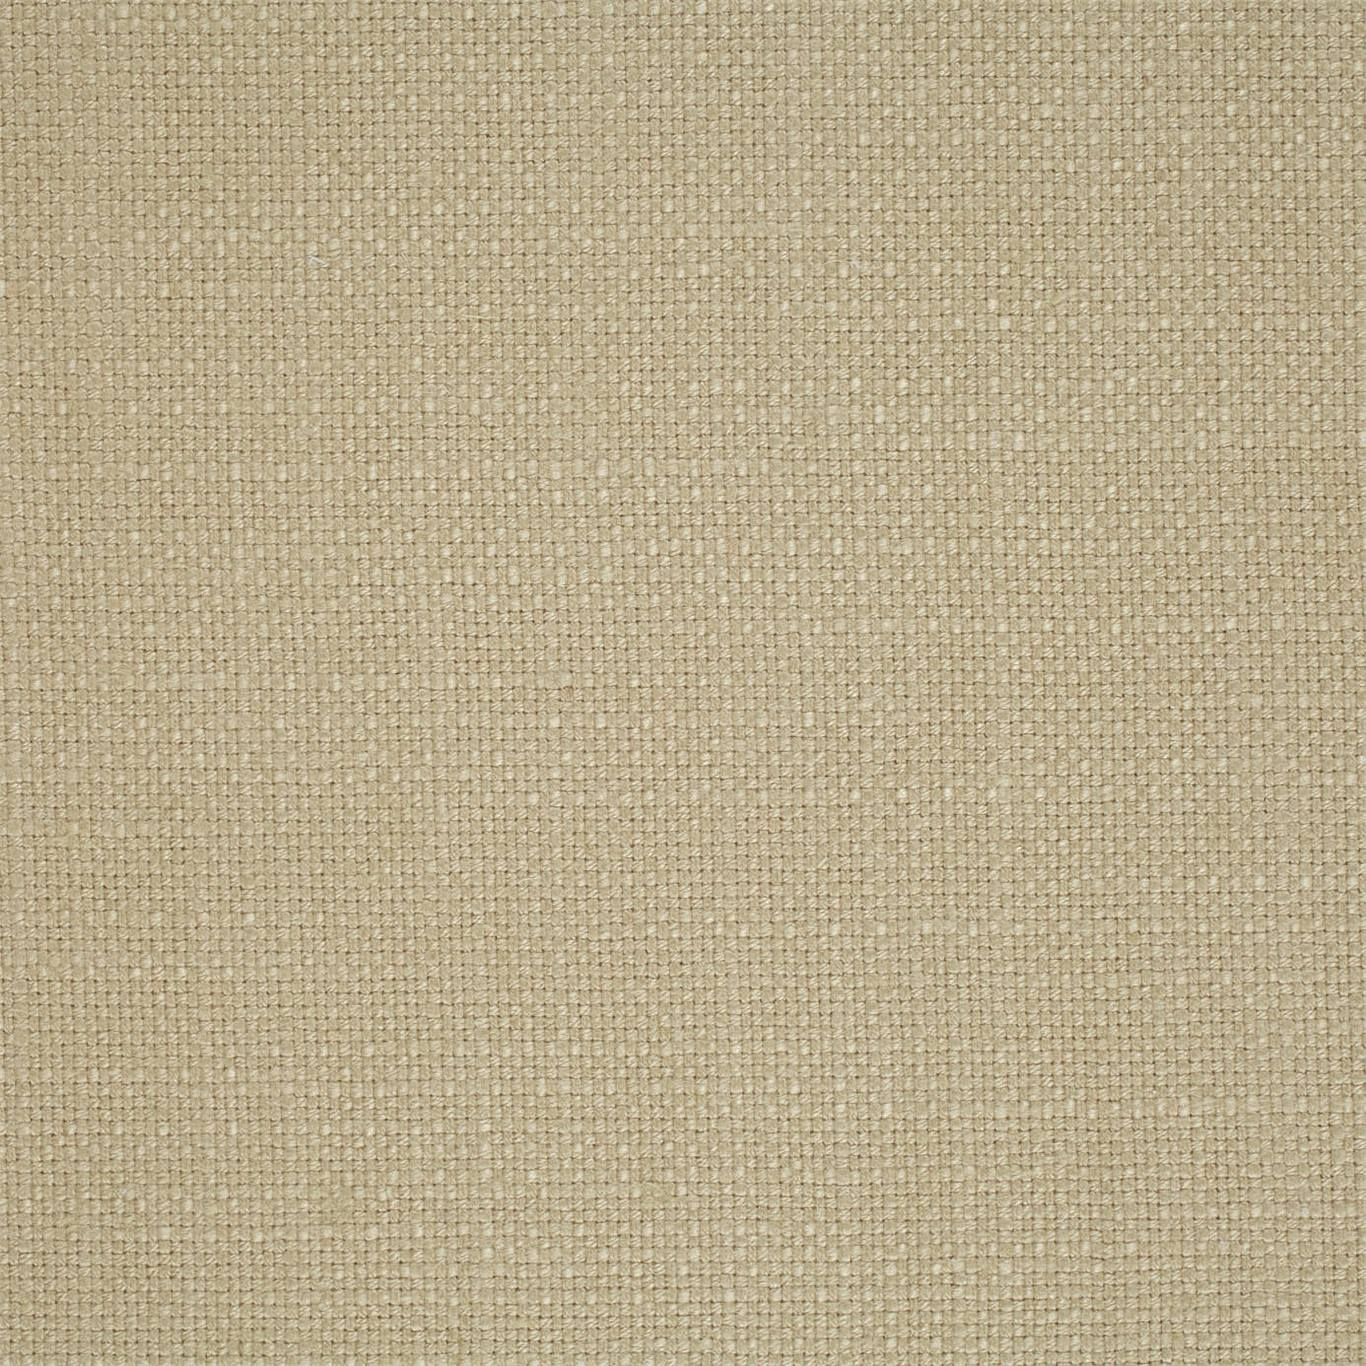 DTUC237123 Collection - Tuscany II Weaves Fabric